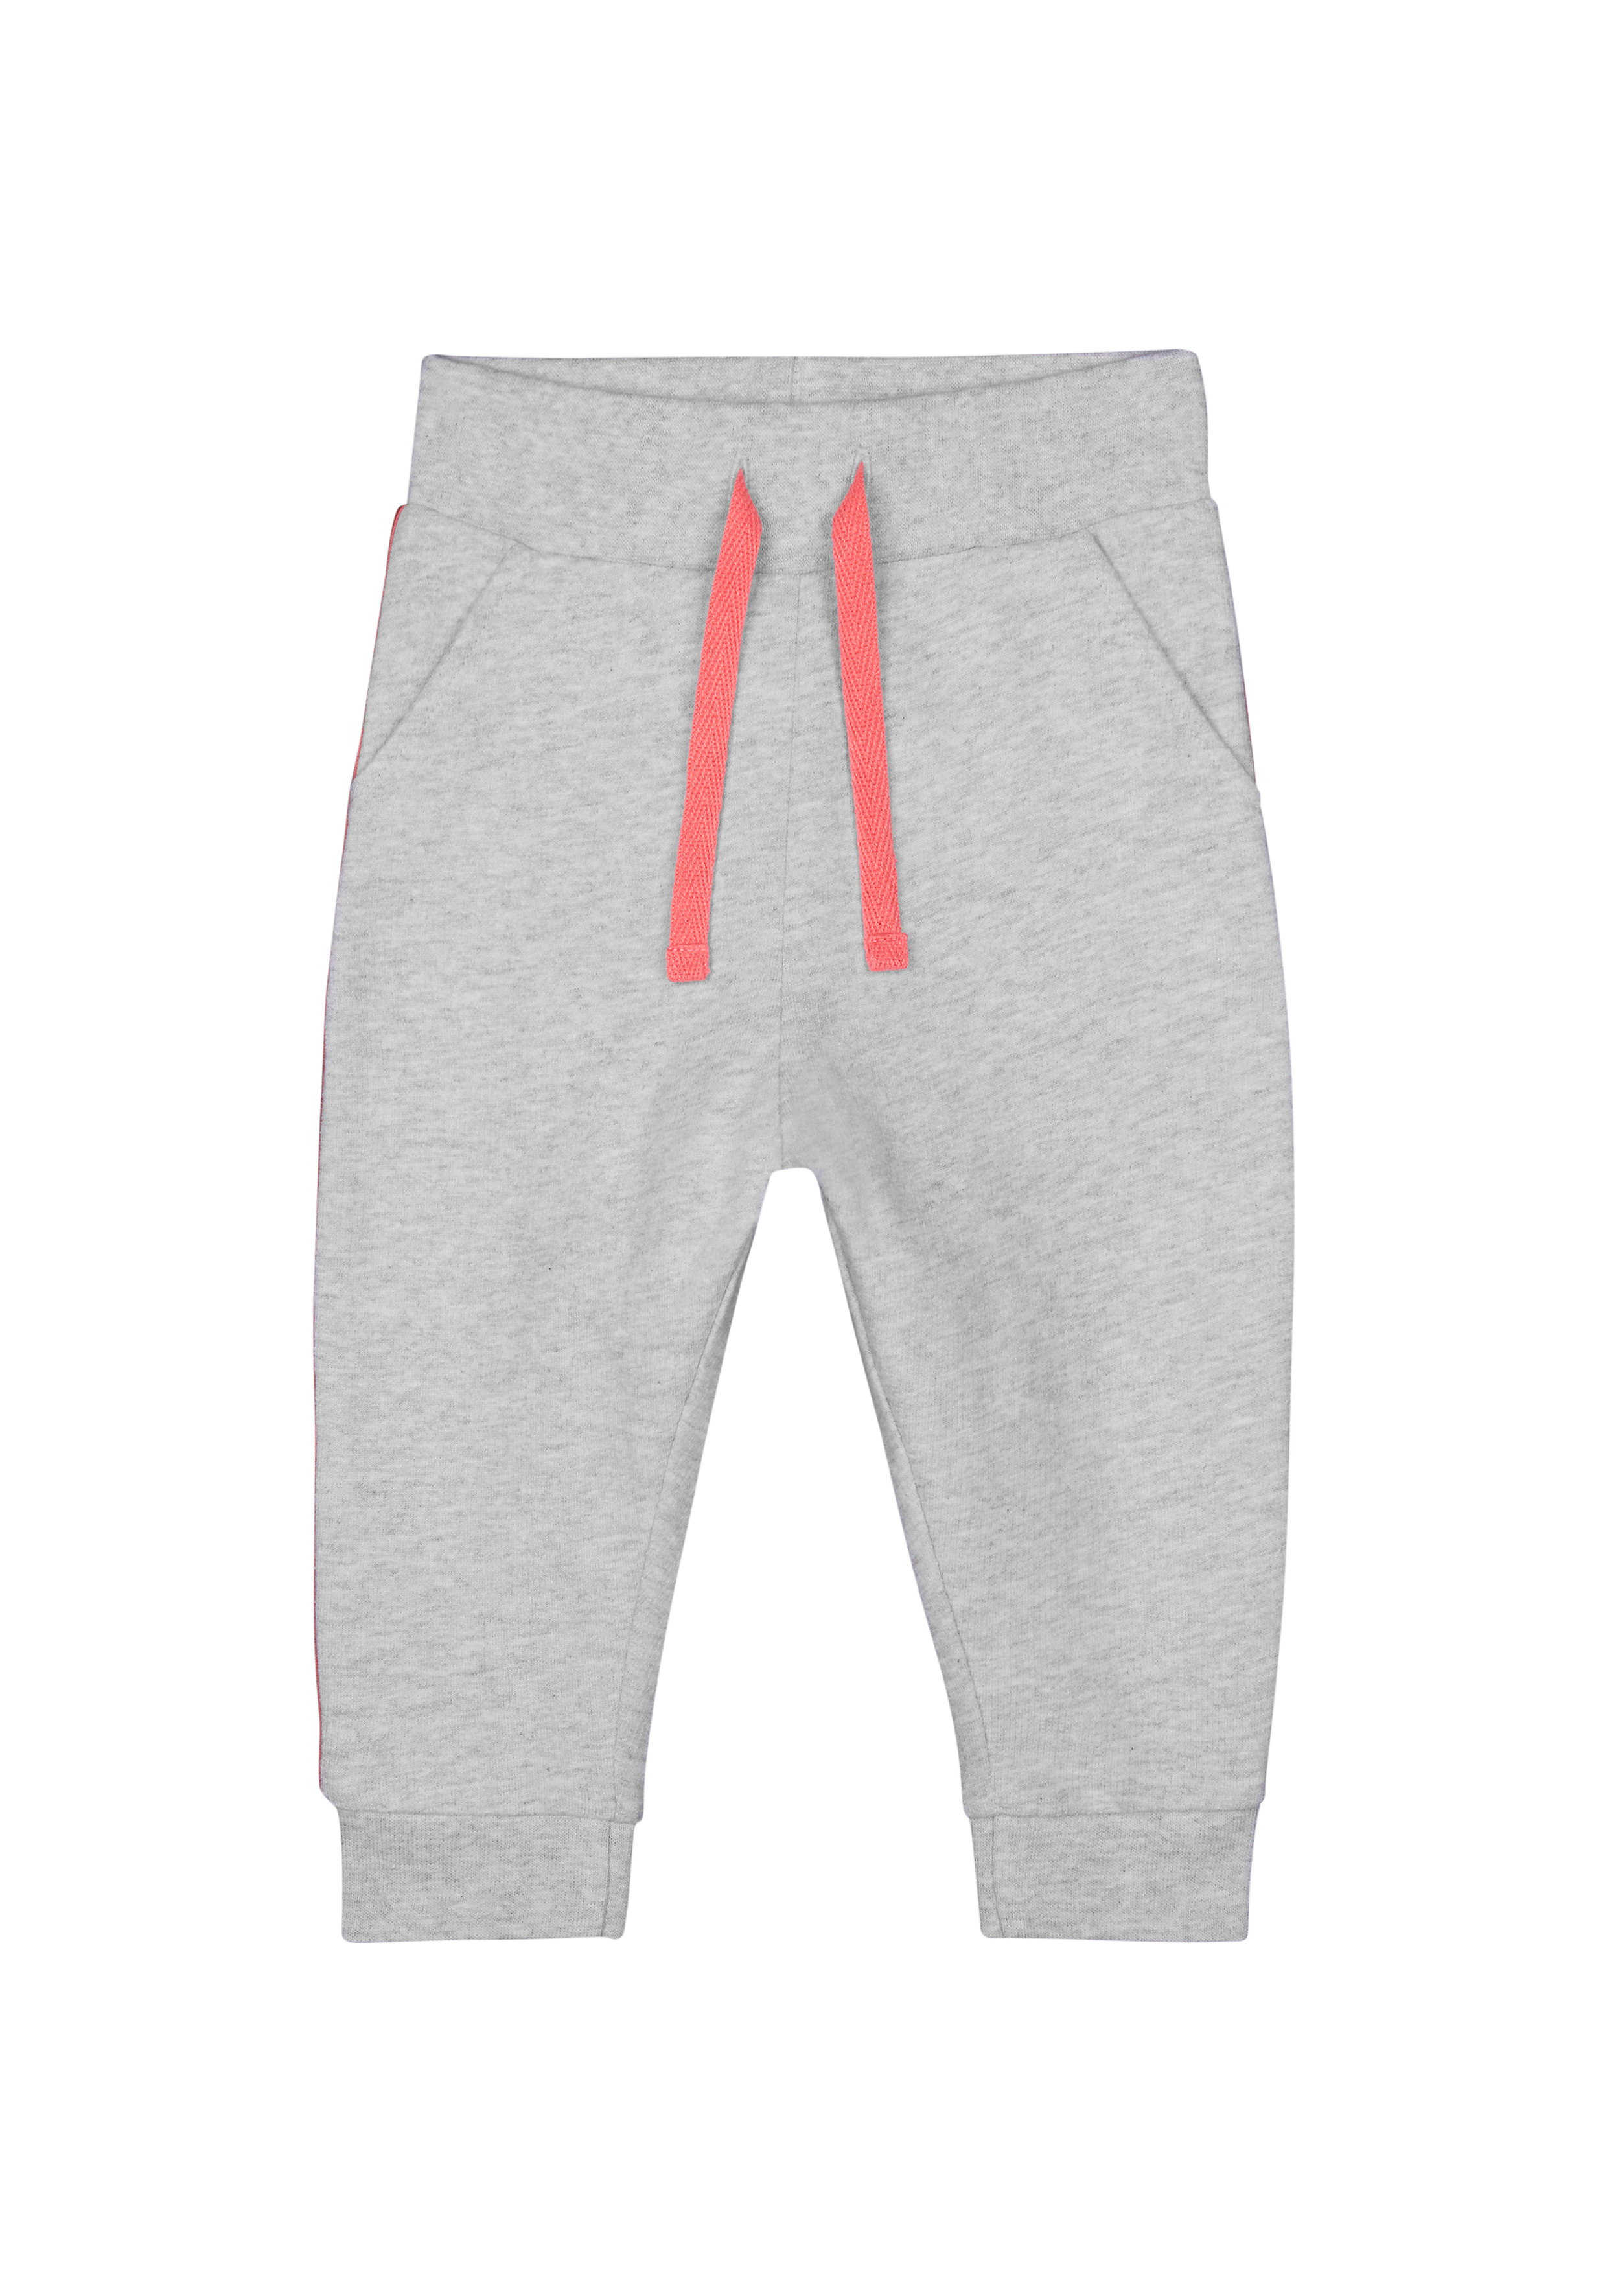 Mothercare | Girls Joggers Side Stripes - Grey